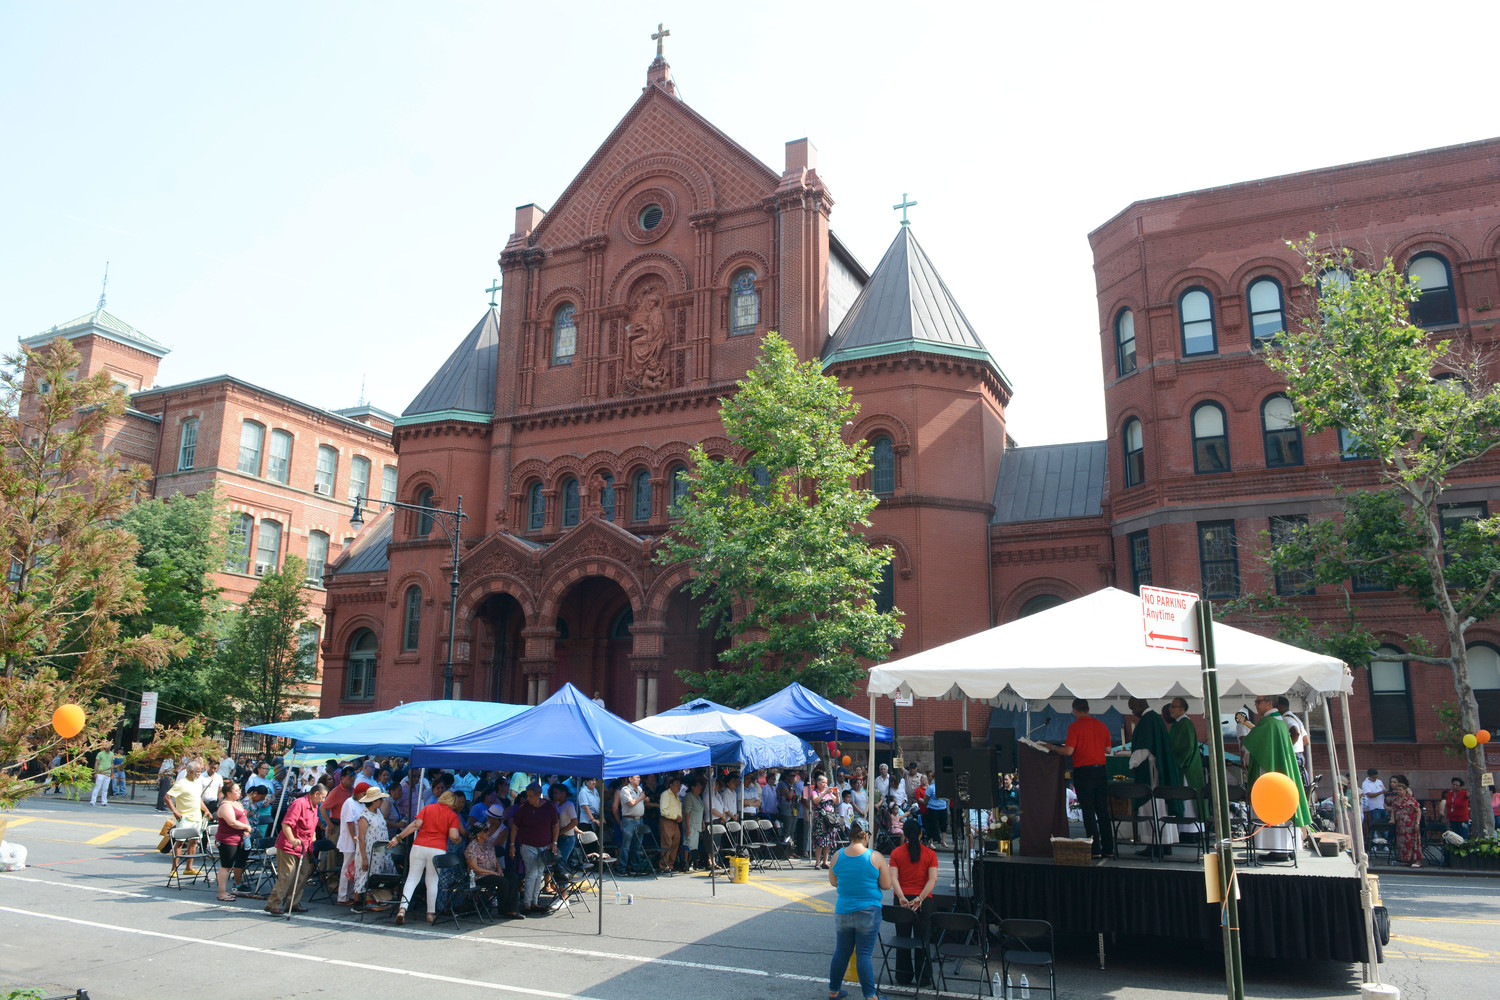 The church makes for a majestic backdrop in this overview of the afternoon street Mass on East 106th Street.